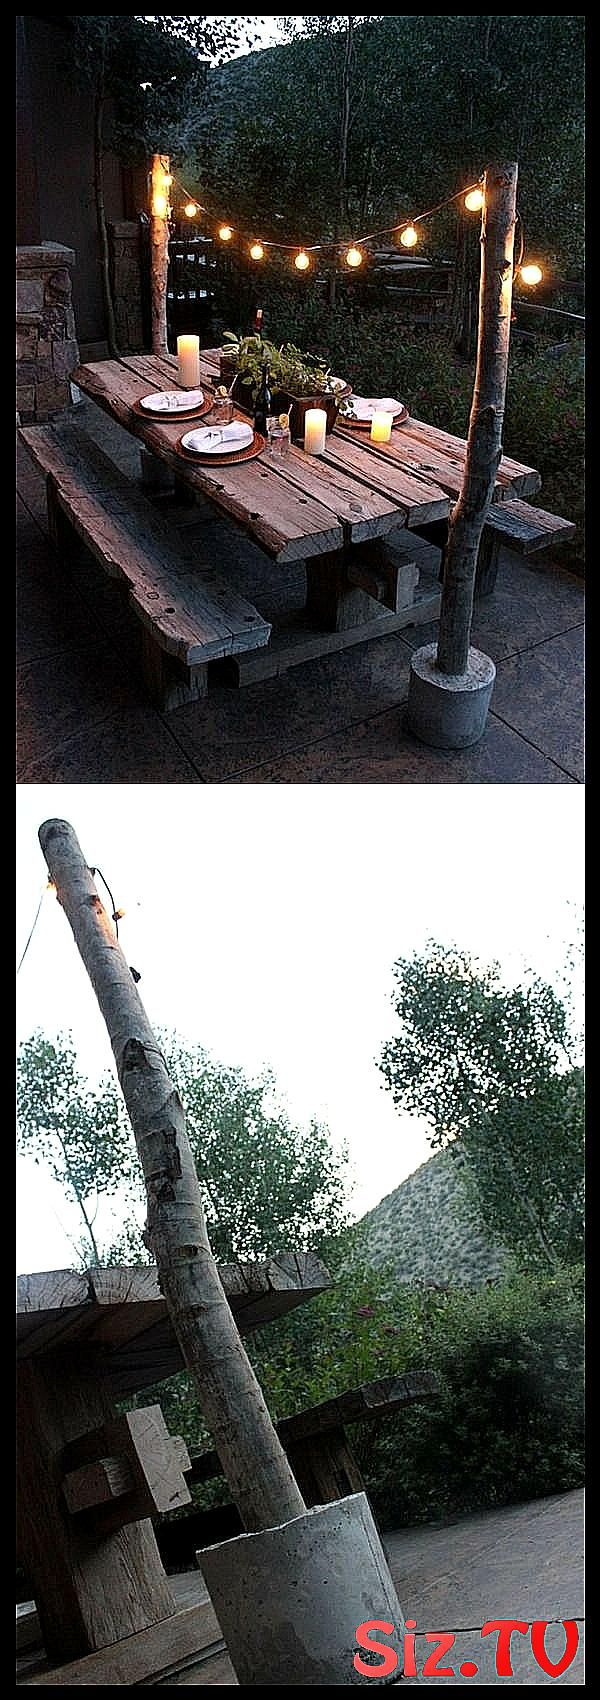 30 Backyard Lighting Ideas And Breathtaking Patio Backyard Breathtaking Classpintag Explo Backyard Lighting Diy Backyard Landscaping Outdoor Path Lighting